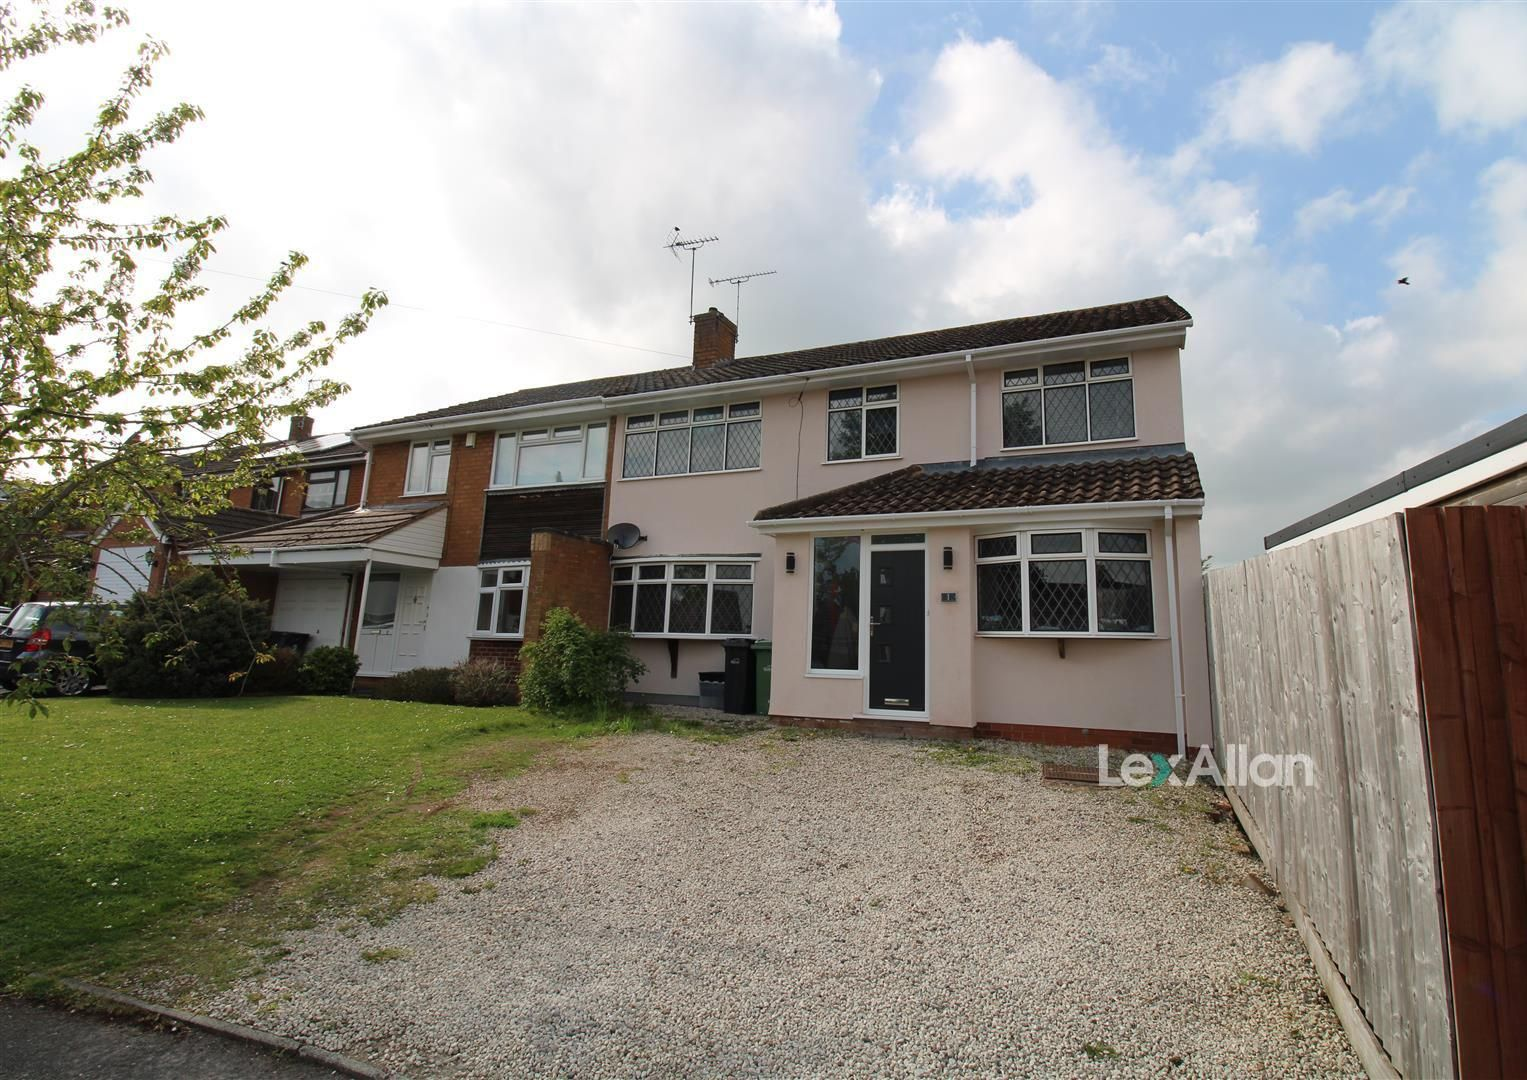 5 bed semi-detached for sale in Wollaston, DY8